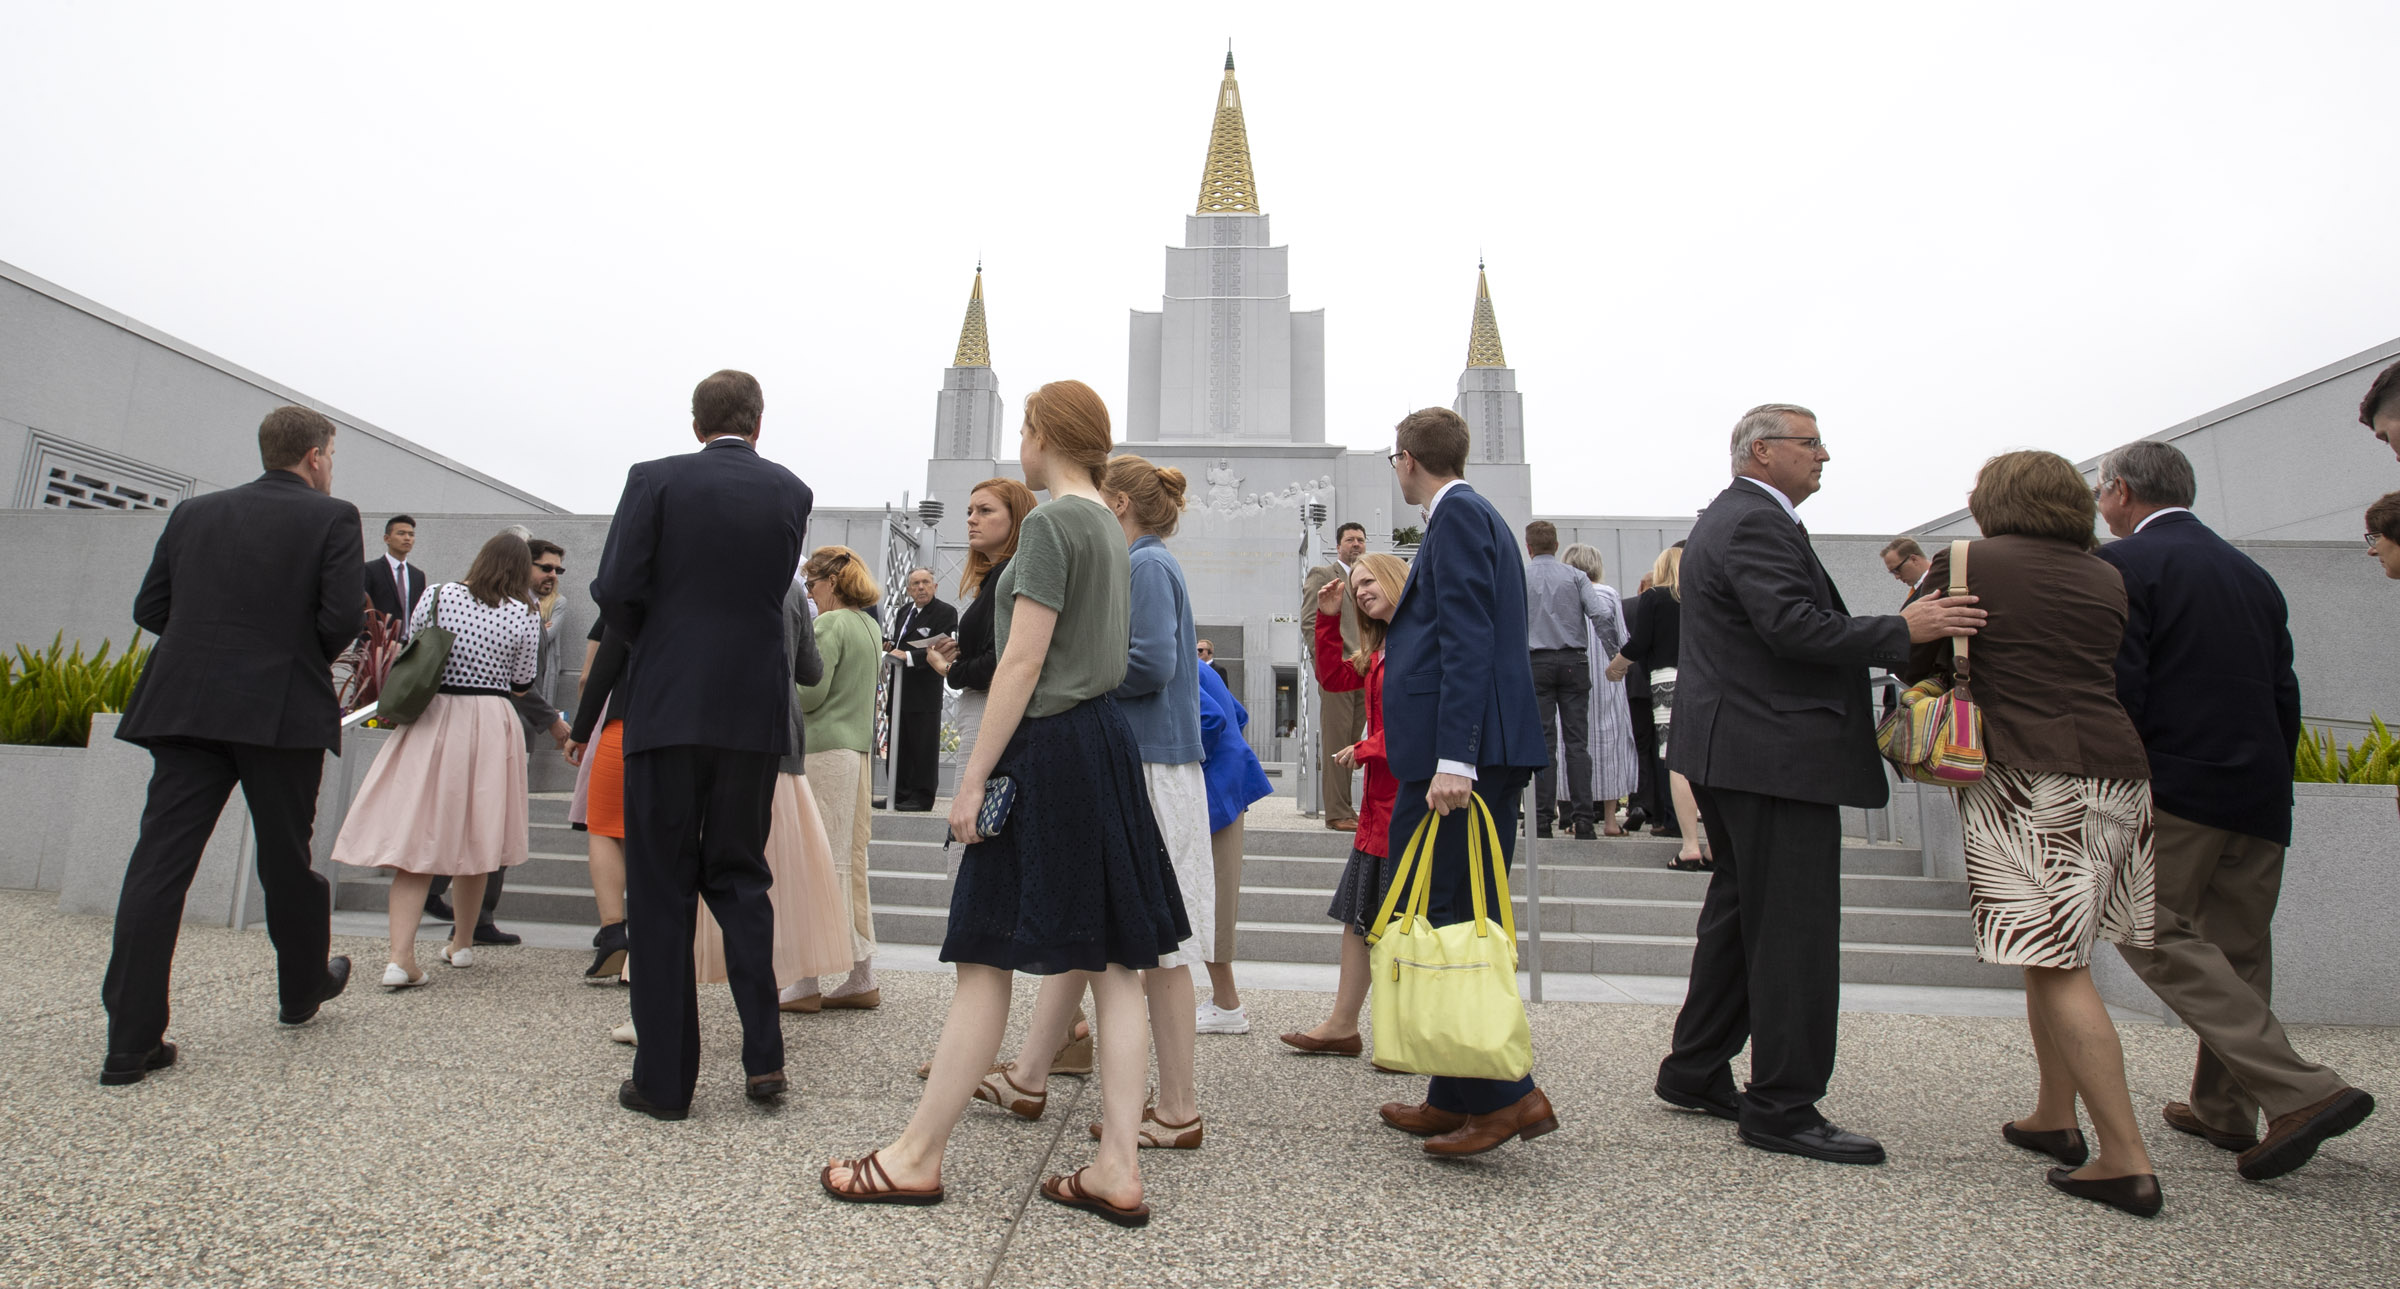 Latter-day Saints enter the Oakland California Temple to hear President Dallin H. Oaks, first counselor in the First Presidency, rededicate the building on Sunday, June 16, 2019.